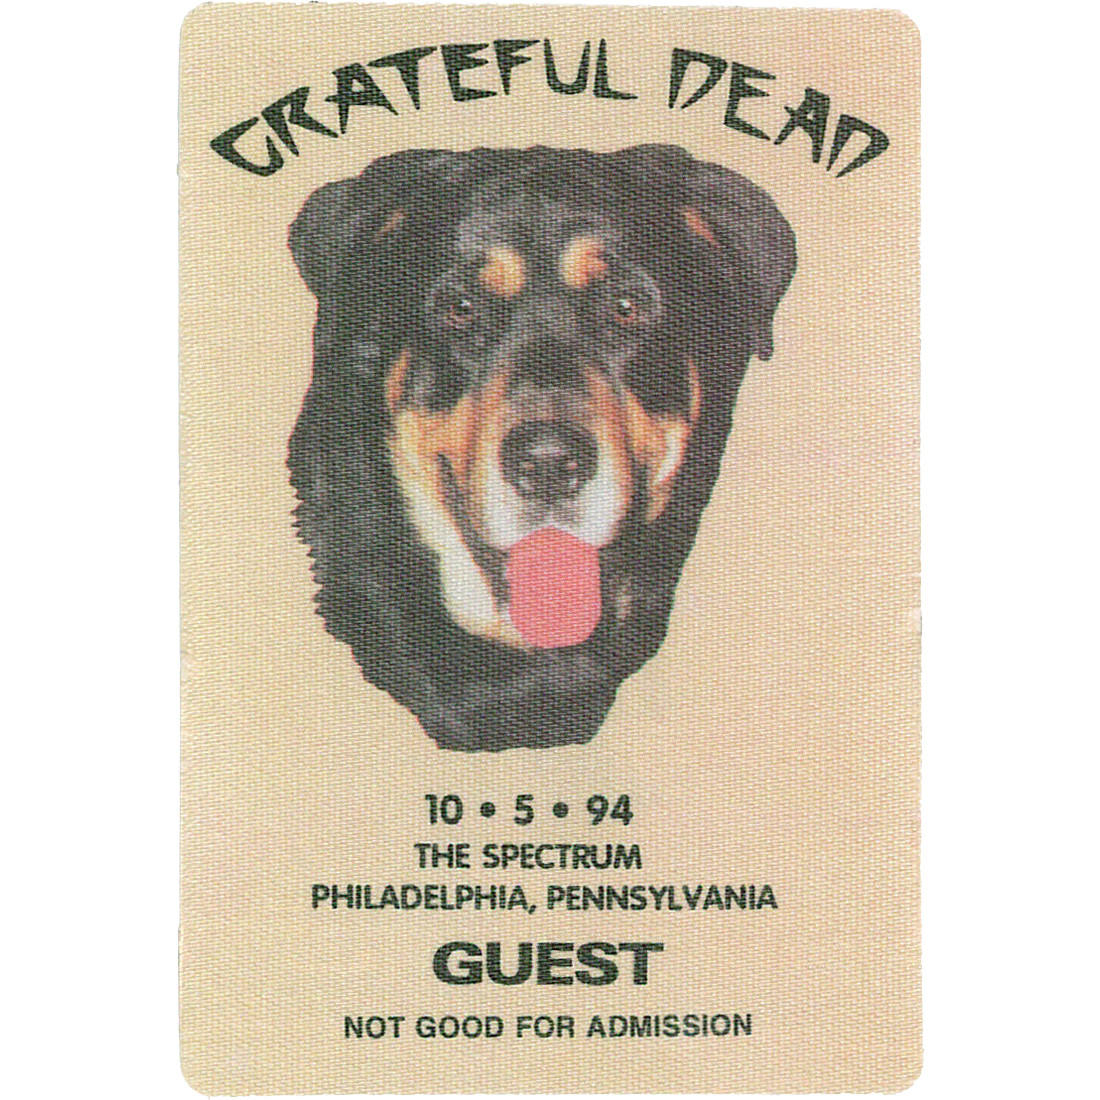 Grateful Dead 1994 10-05 Backstage Pass